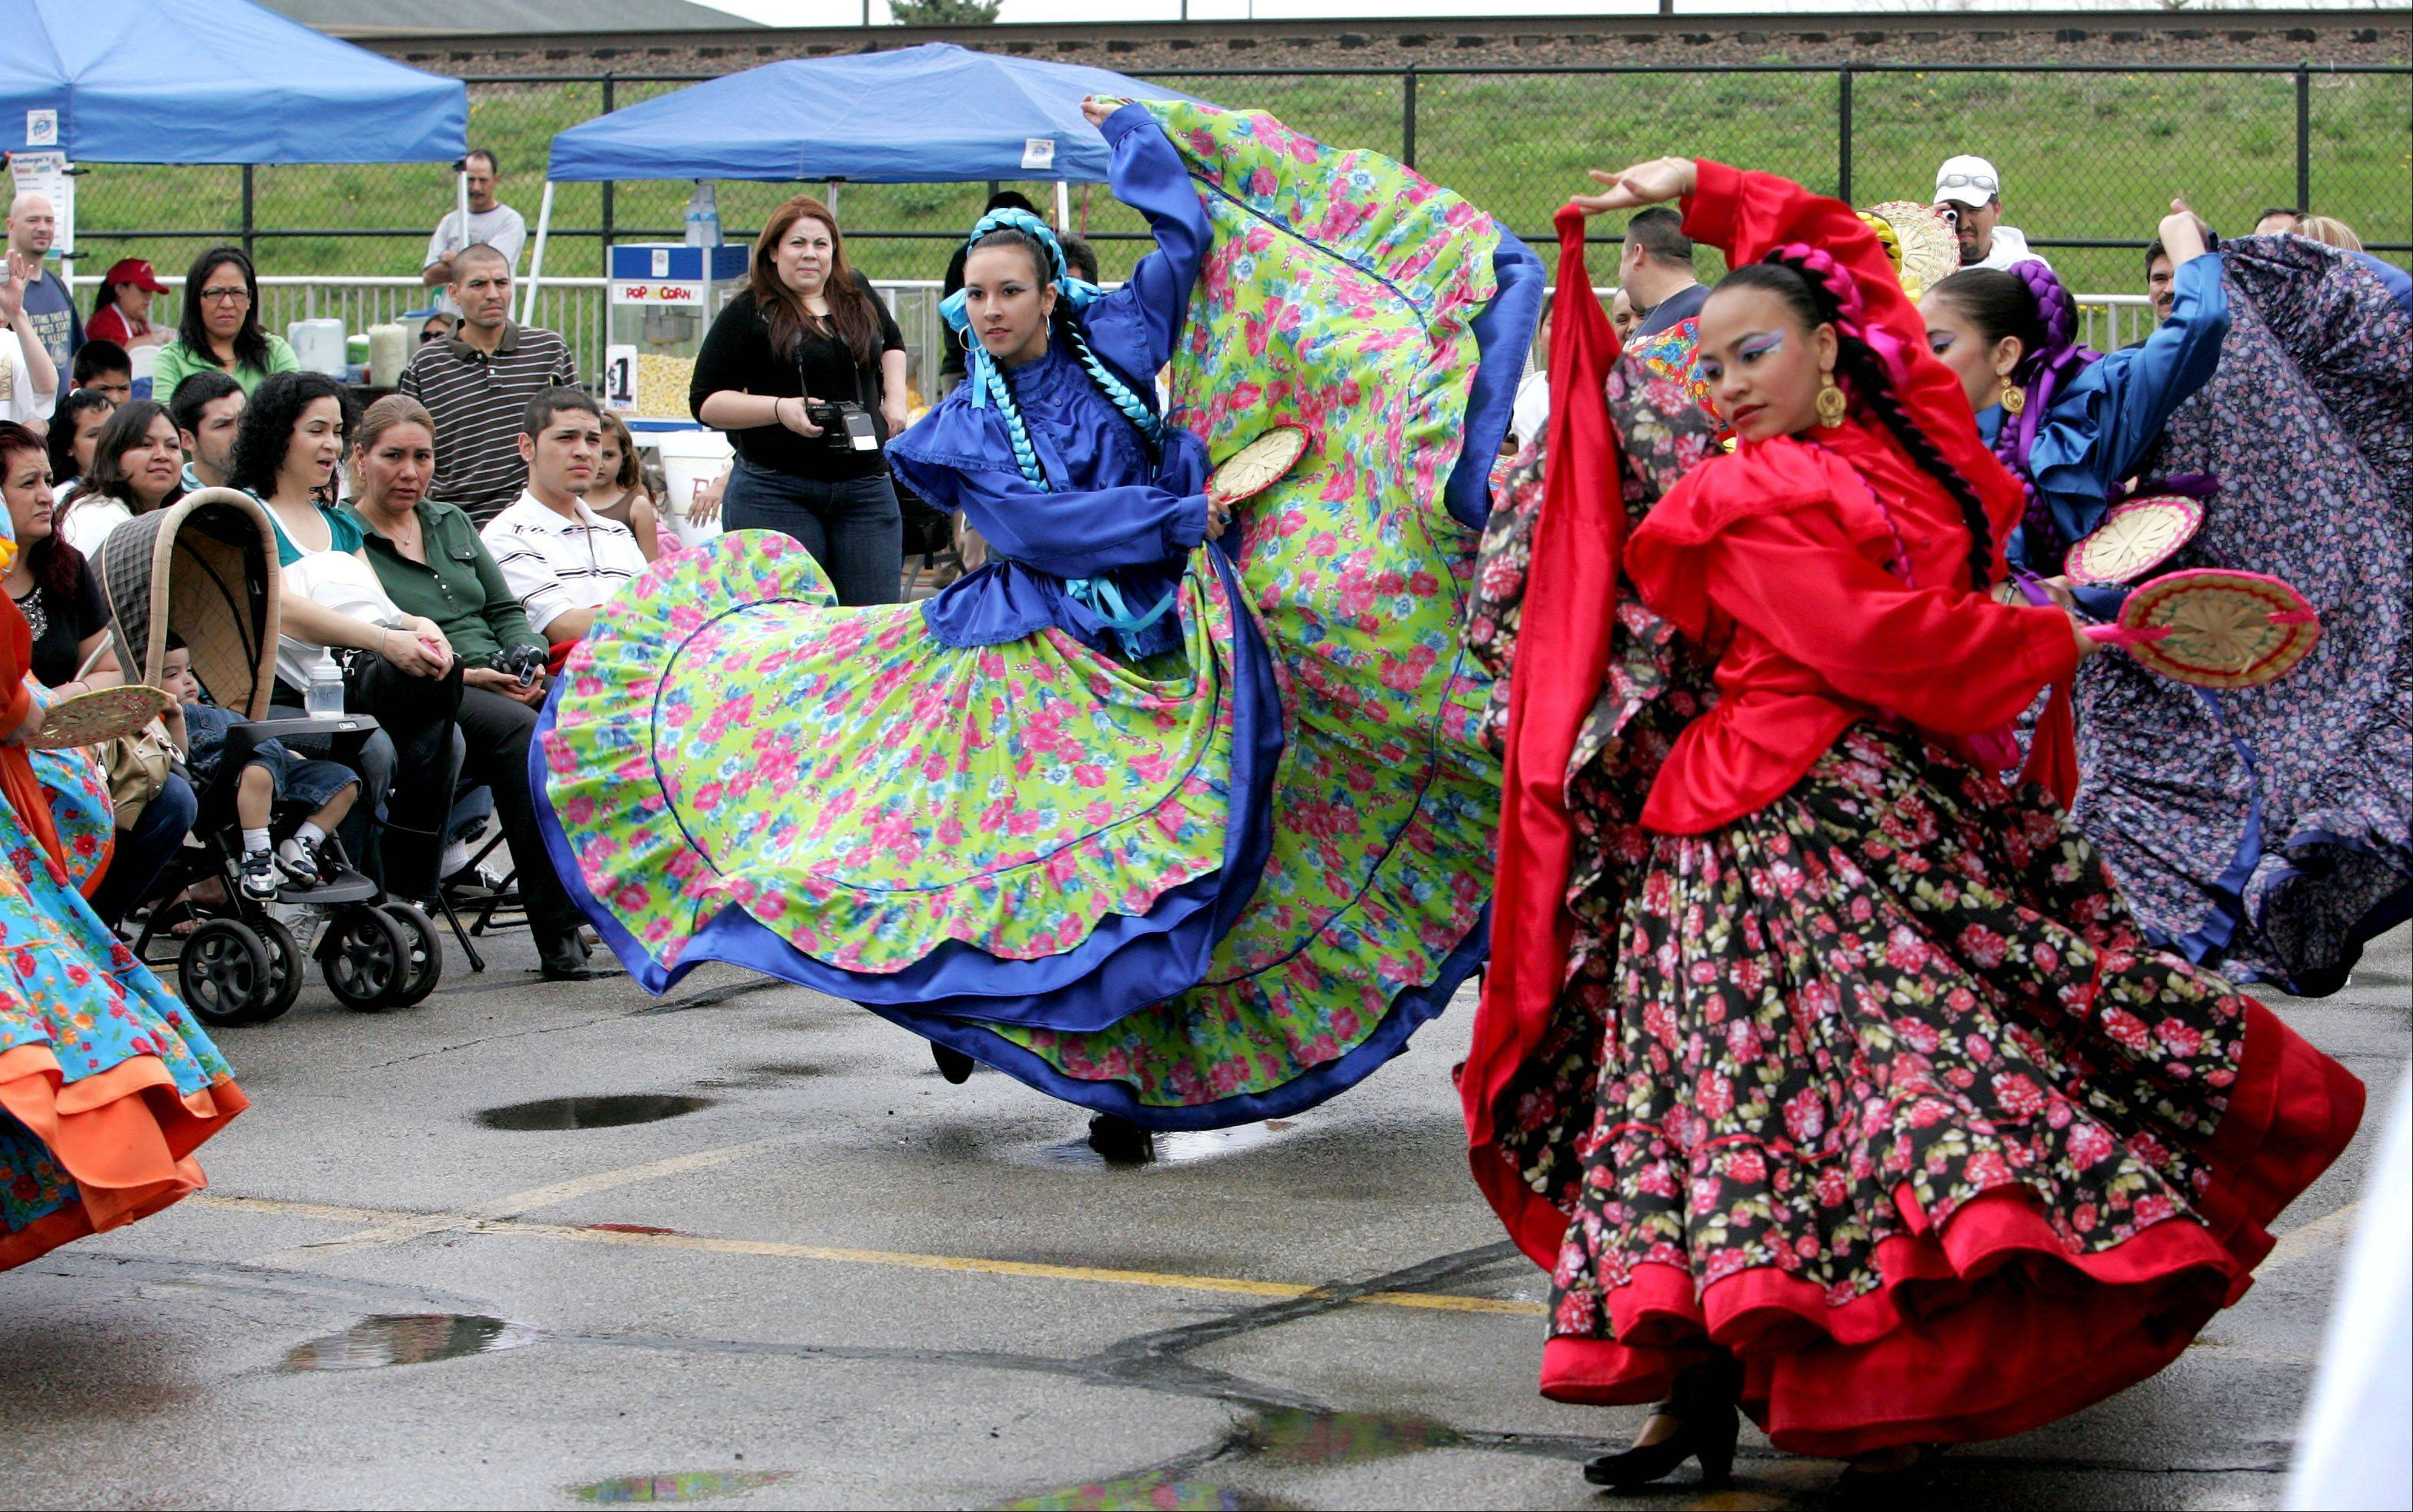 Ballet Folklorico Quetzolcoatl will perform Saturday, April 27 during the annual El Dia de los Ninos festival at Spring Street and Lincoln Avenue in Aurora.